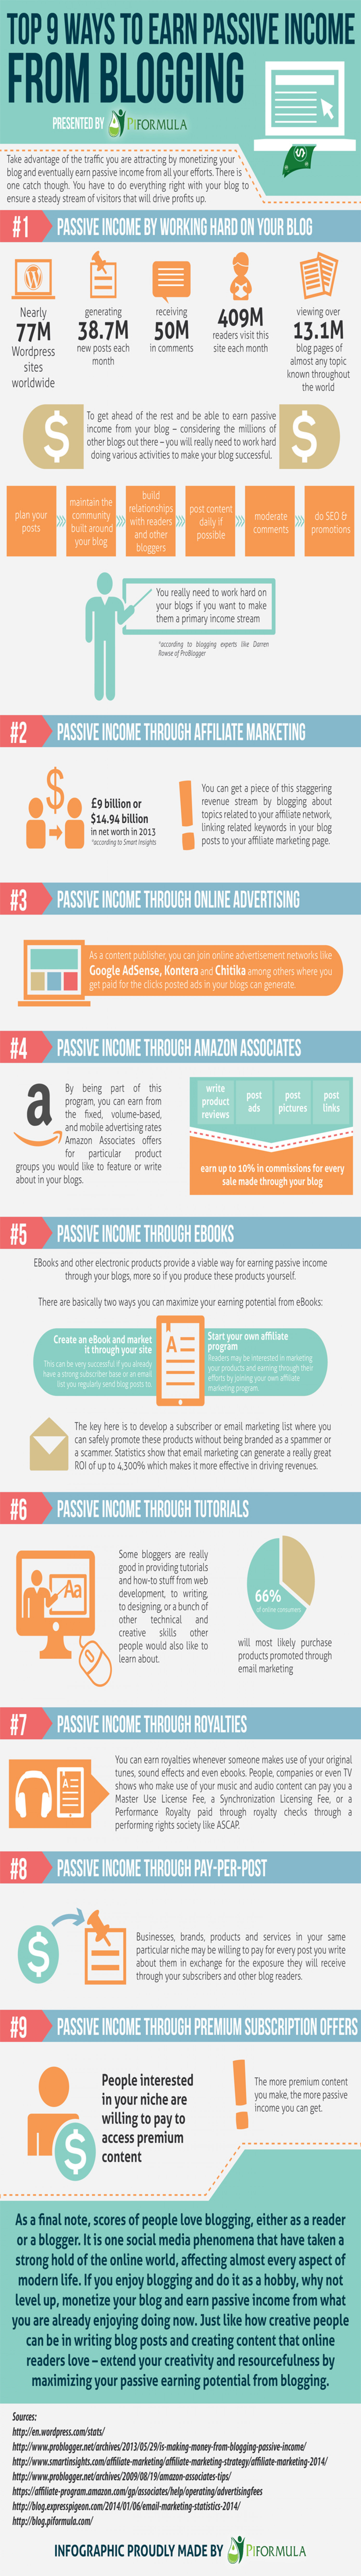 Top 9 Ways to Earn Passive Income from Blogging Infographic